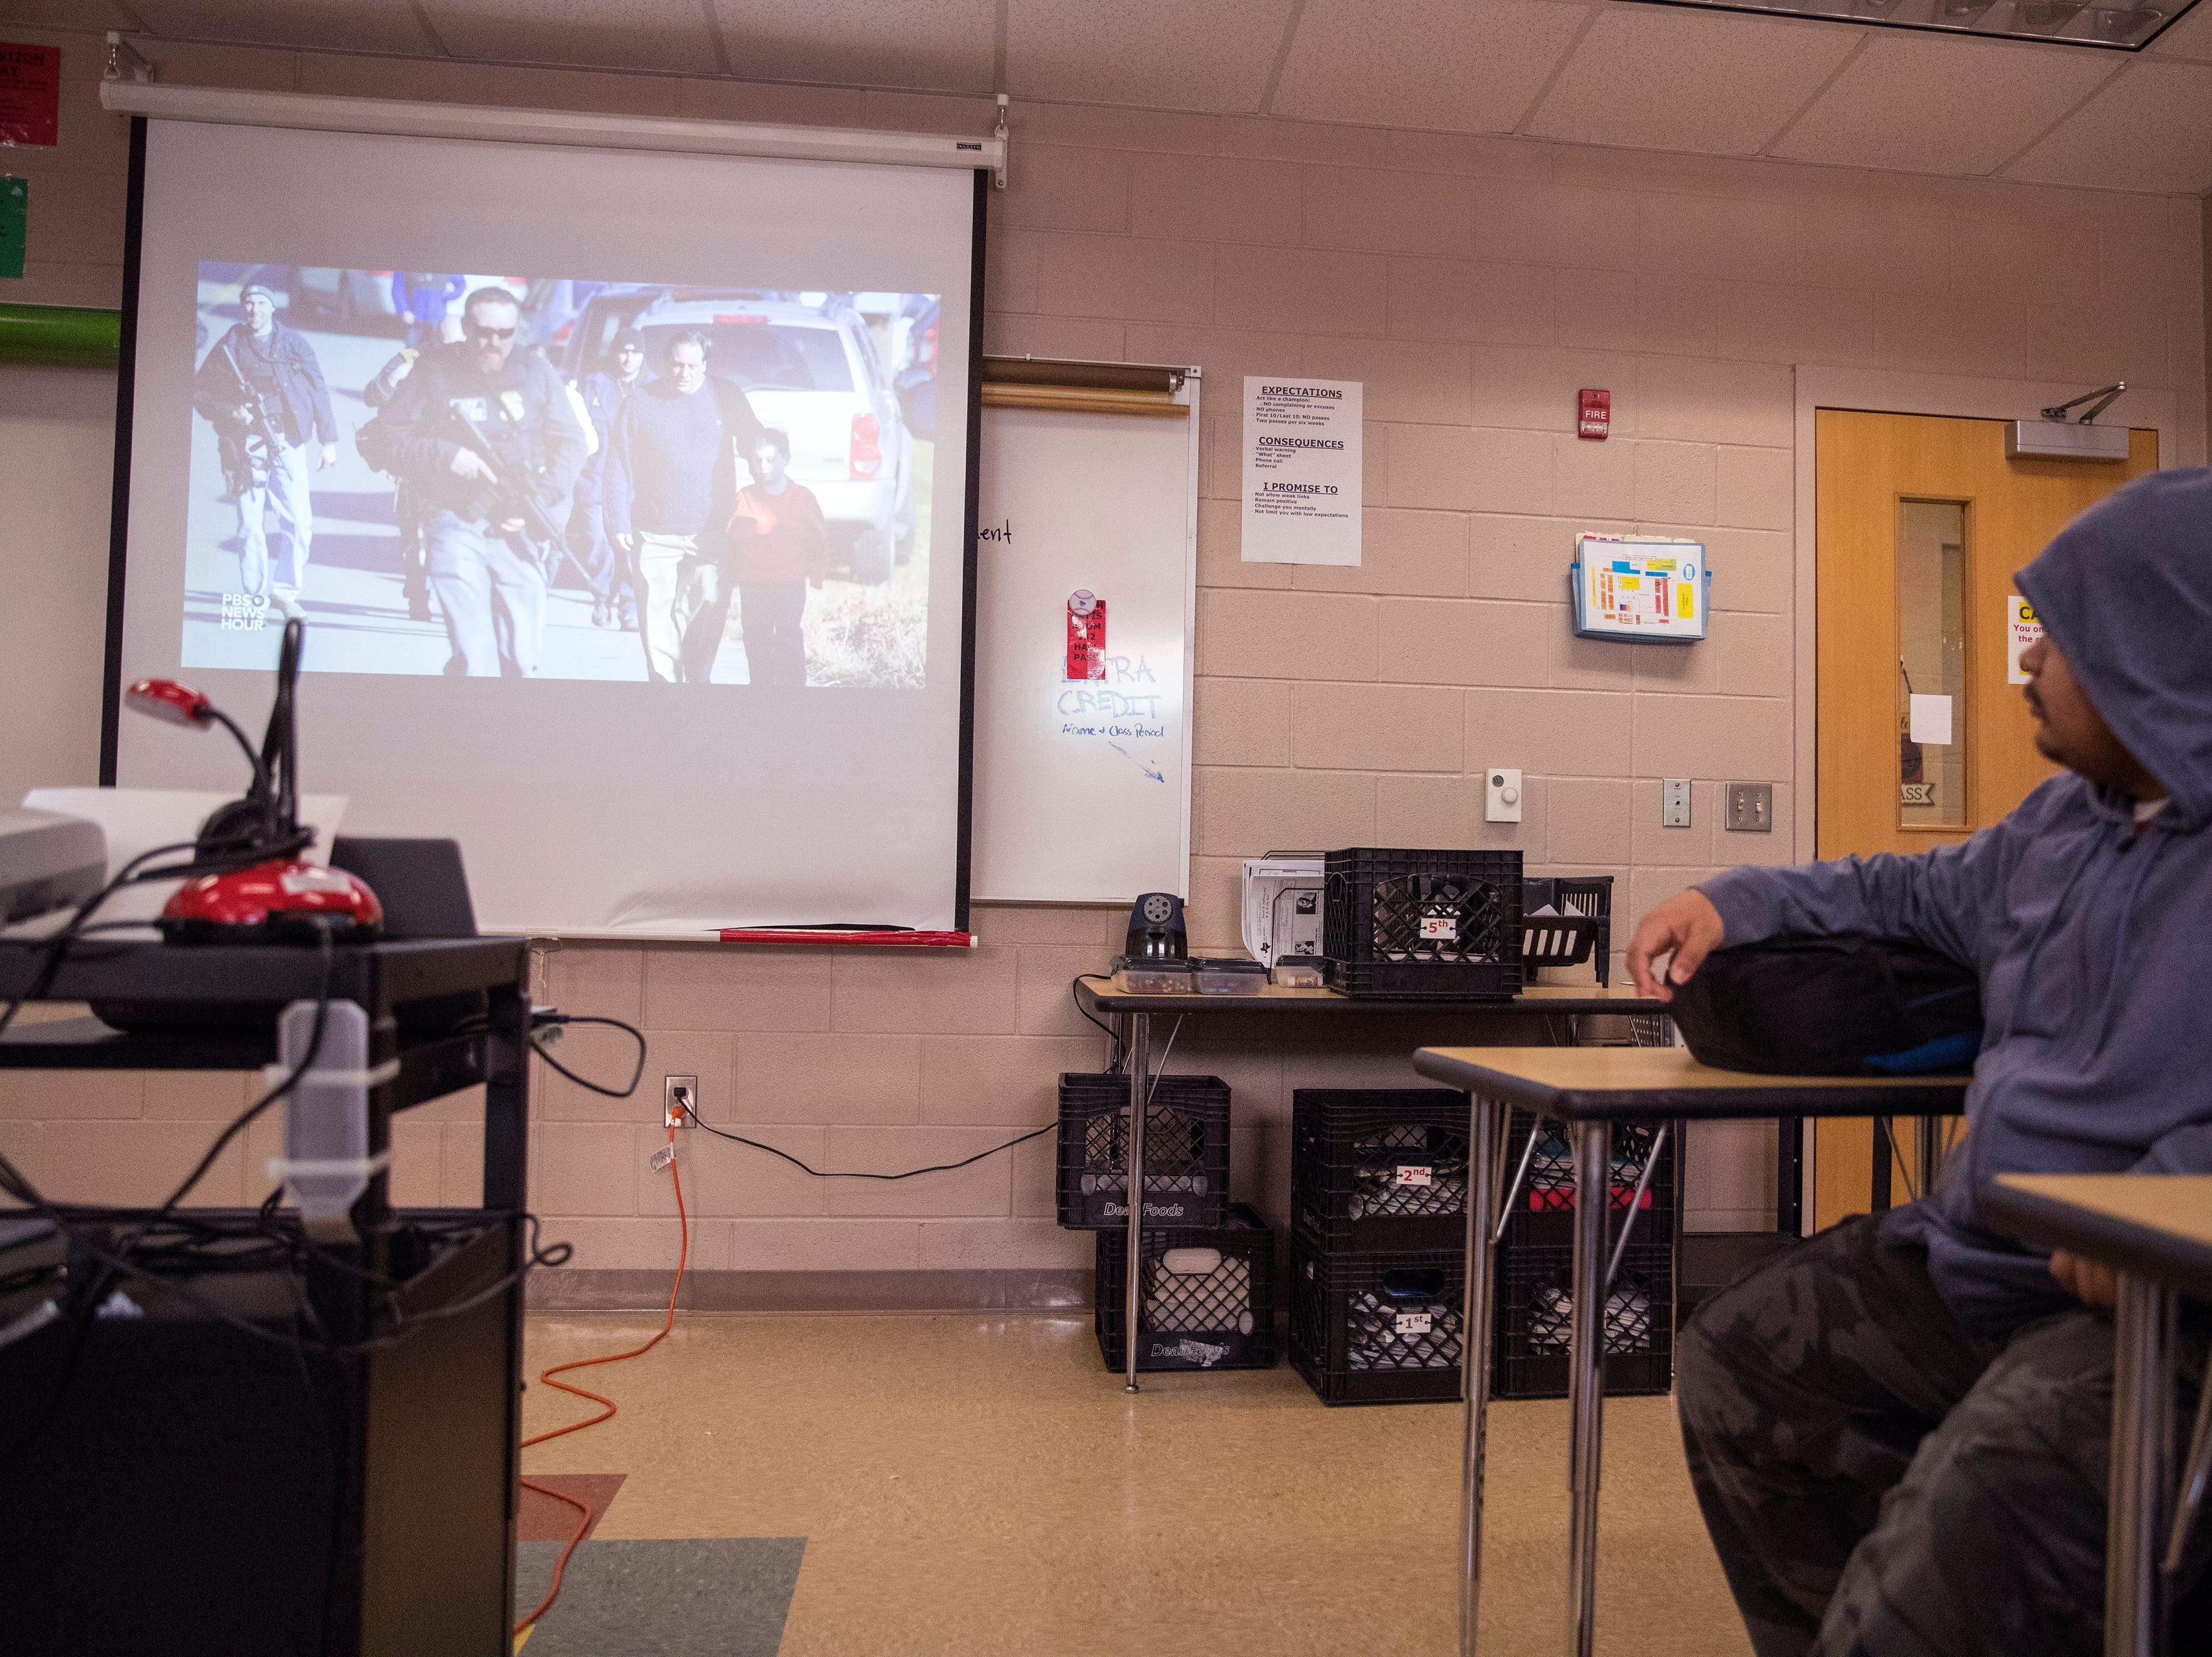 """Xzavier Villarreal, 17, watches a video about an app created to help prevent school shootings following the Parkland school shooting during """"bear time"""" at West Oso High School on Wednesday, February 13, 2019. The homeroom period is used as a safe space during which teachers are expected to develop a home away from home culture where they can pick up on any warning signs that students may be having suicidal thoughts so they can be referred to counselors."""